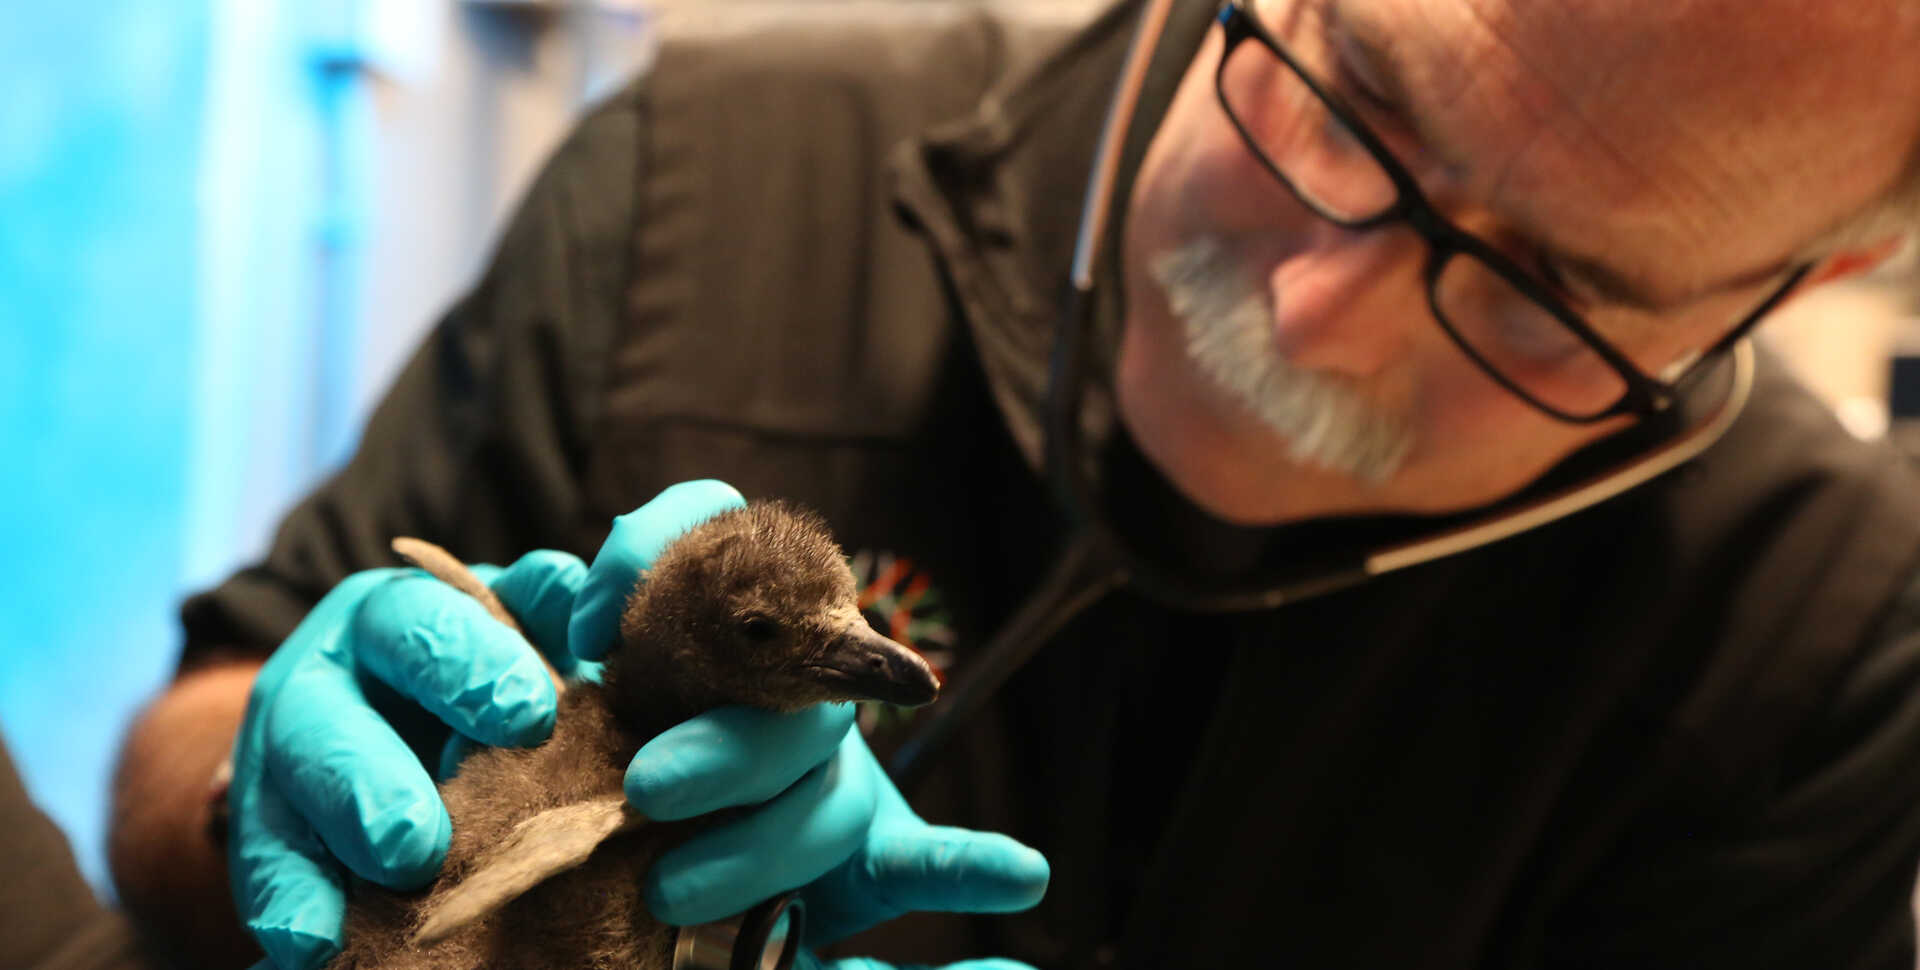 Academy veterinarian Freeland Dunker examines an African penguin chick with a stethoscope